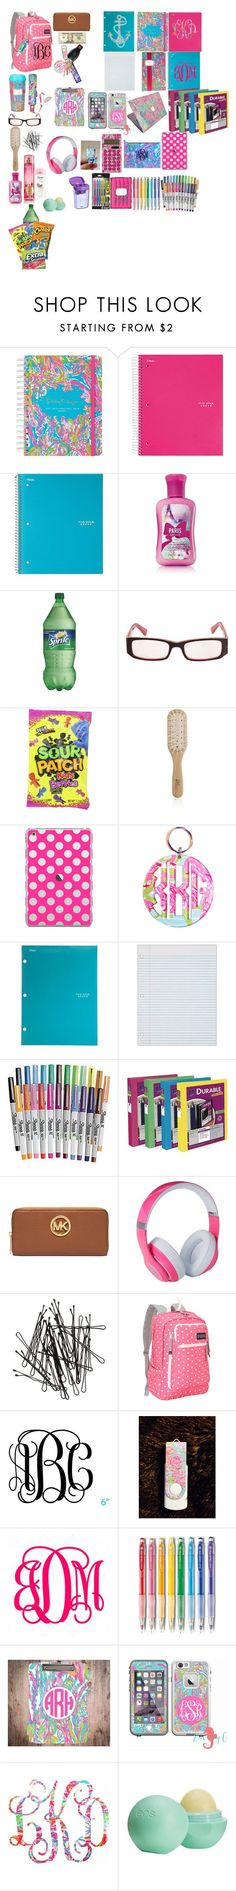 Back to school organization highschool lilly pulitzer 36 ideas School Kit, School 2017, School Hacks, Diy Back To School, Middle School, School Suplies, Back To School Essentials, Back To School Supplies, 6th Grade School Supplies